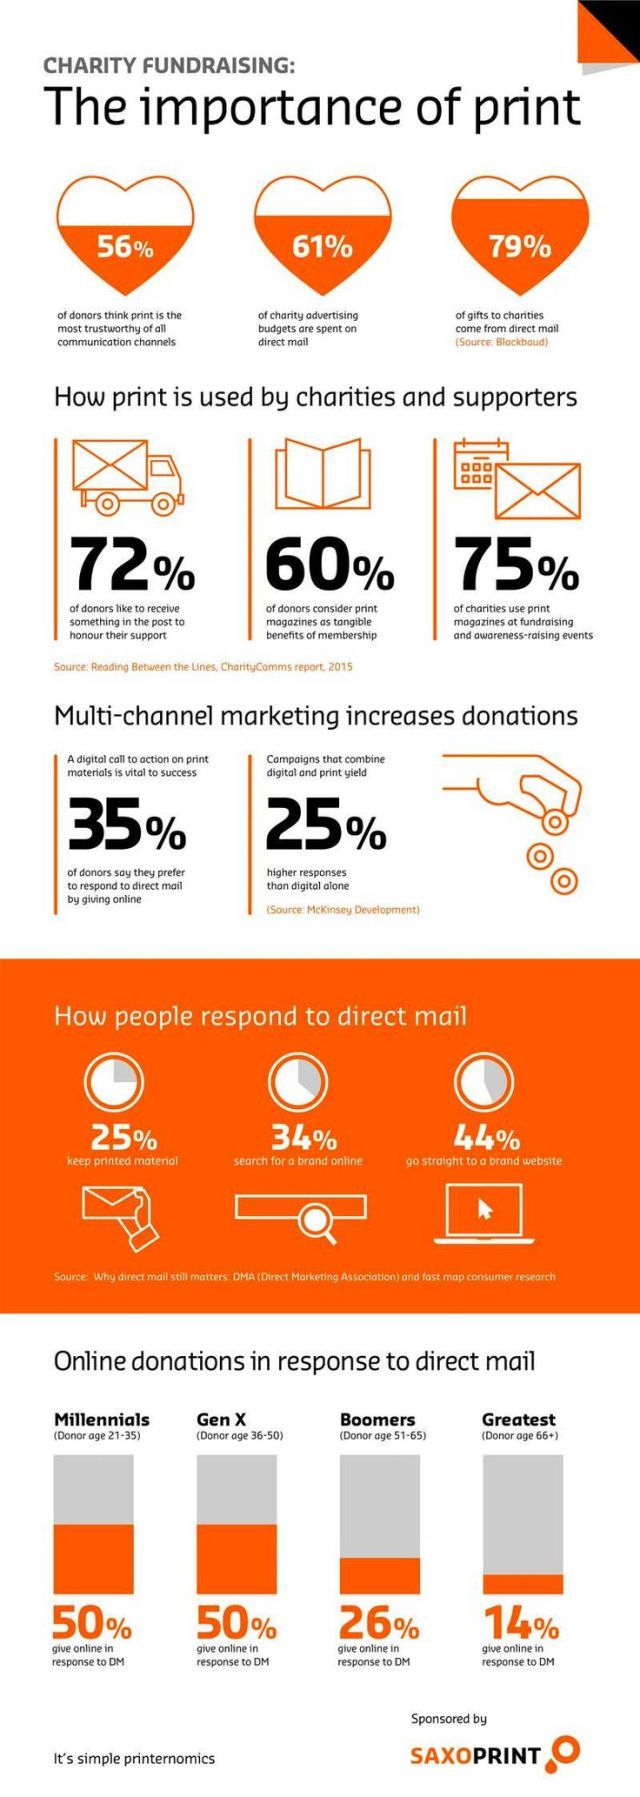 fundraising infographic : Charity fundraising and print: the importance of direct mail [INFOGRAPHIC] | UK Fundraising